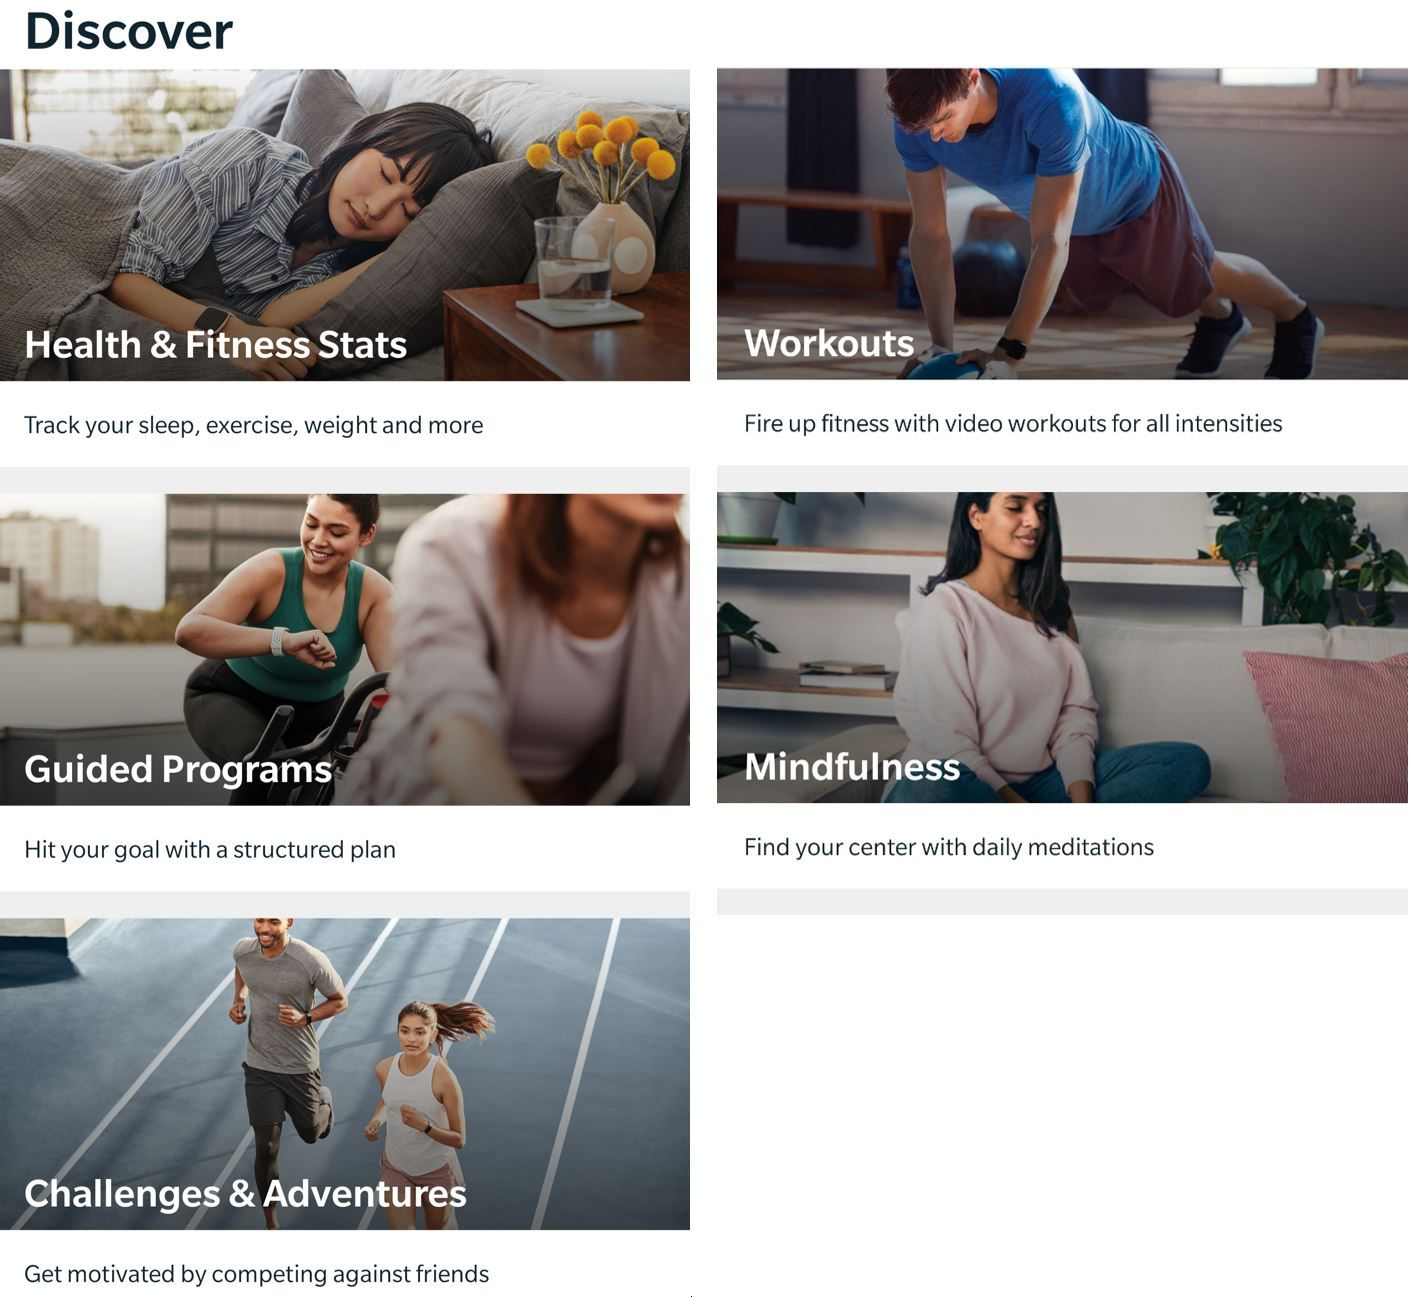 fitbit-discover-1